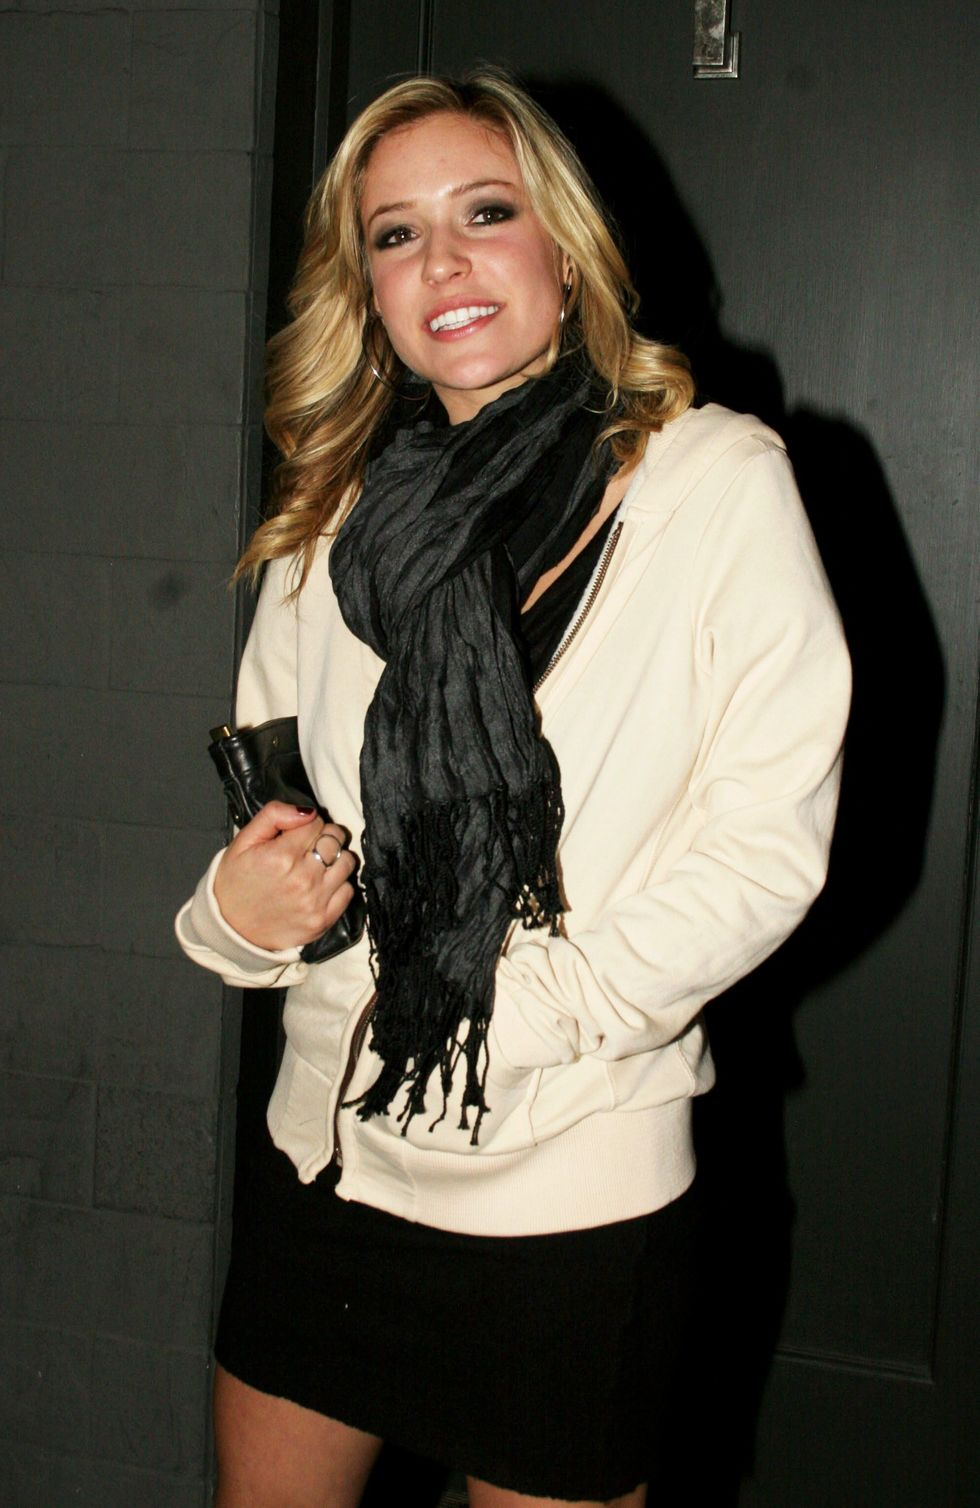 kristin-cavallari-at-villa-lounge-nightclub-01